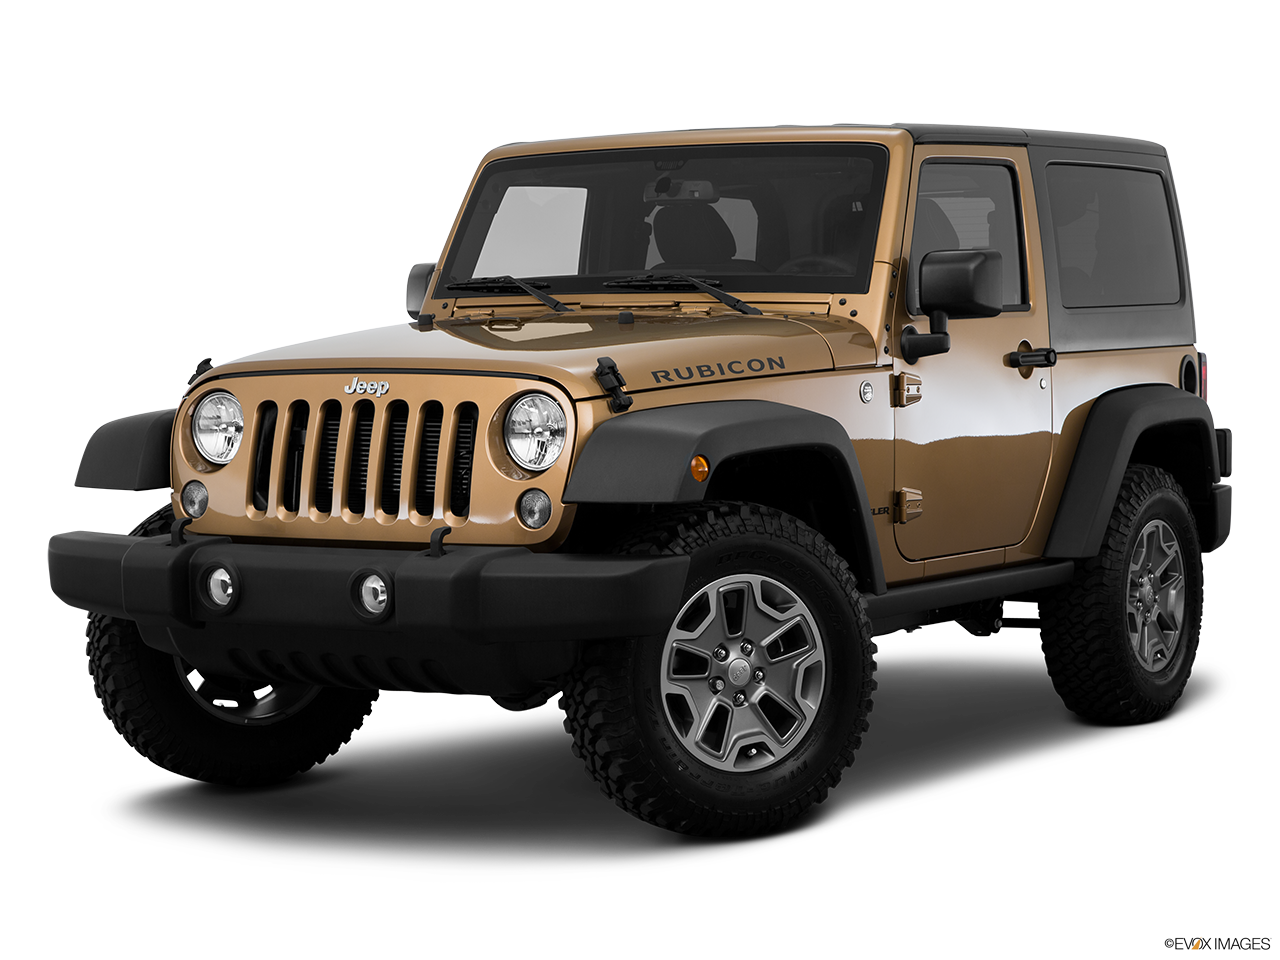 Test Drive A 2015 Jeep Wrangler at Huntington Beach Chrysler Dodge Jeep Ram in Huntington Beach